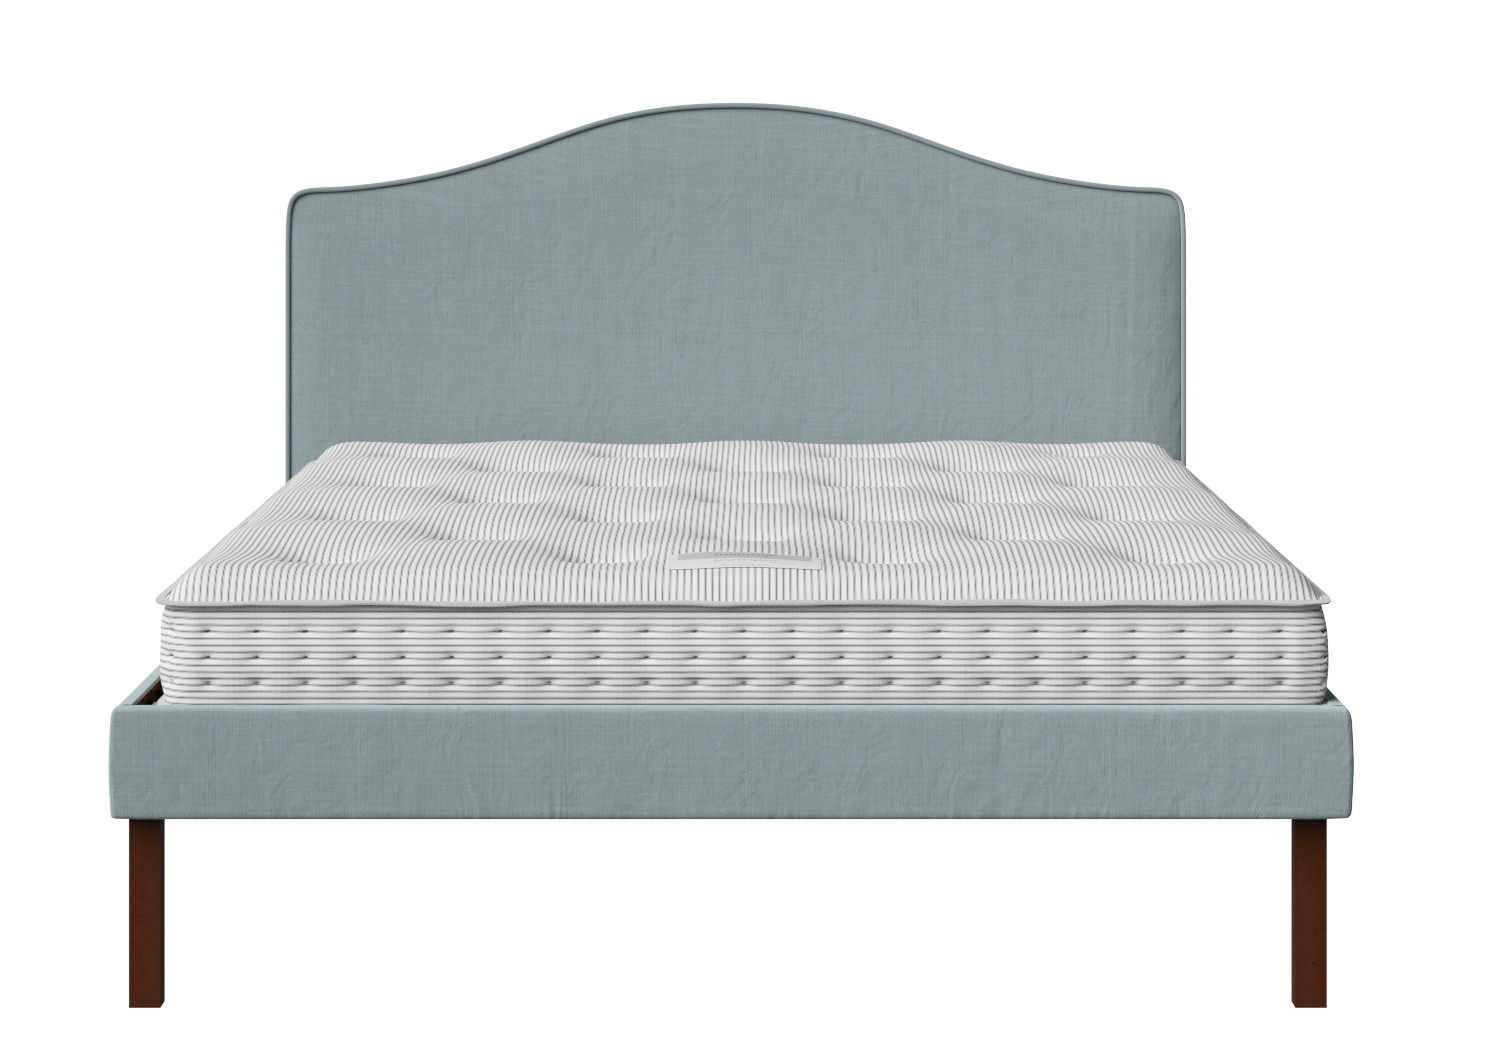 Yoshida Upholstered Bed with Wedgewood fabric with piping shown with Juno 1 mattress